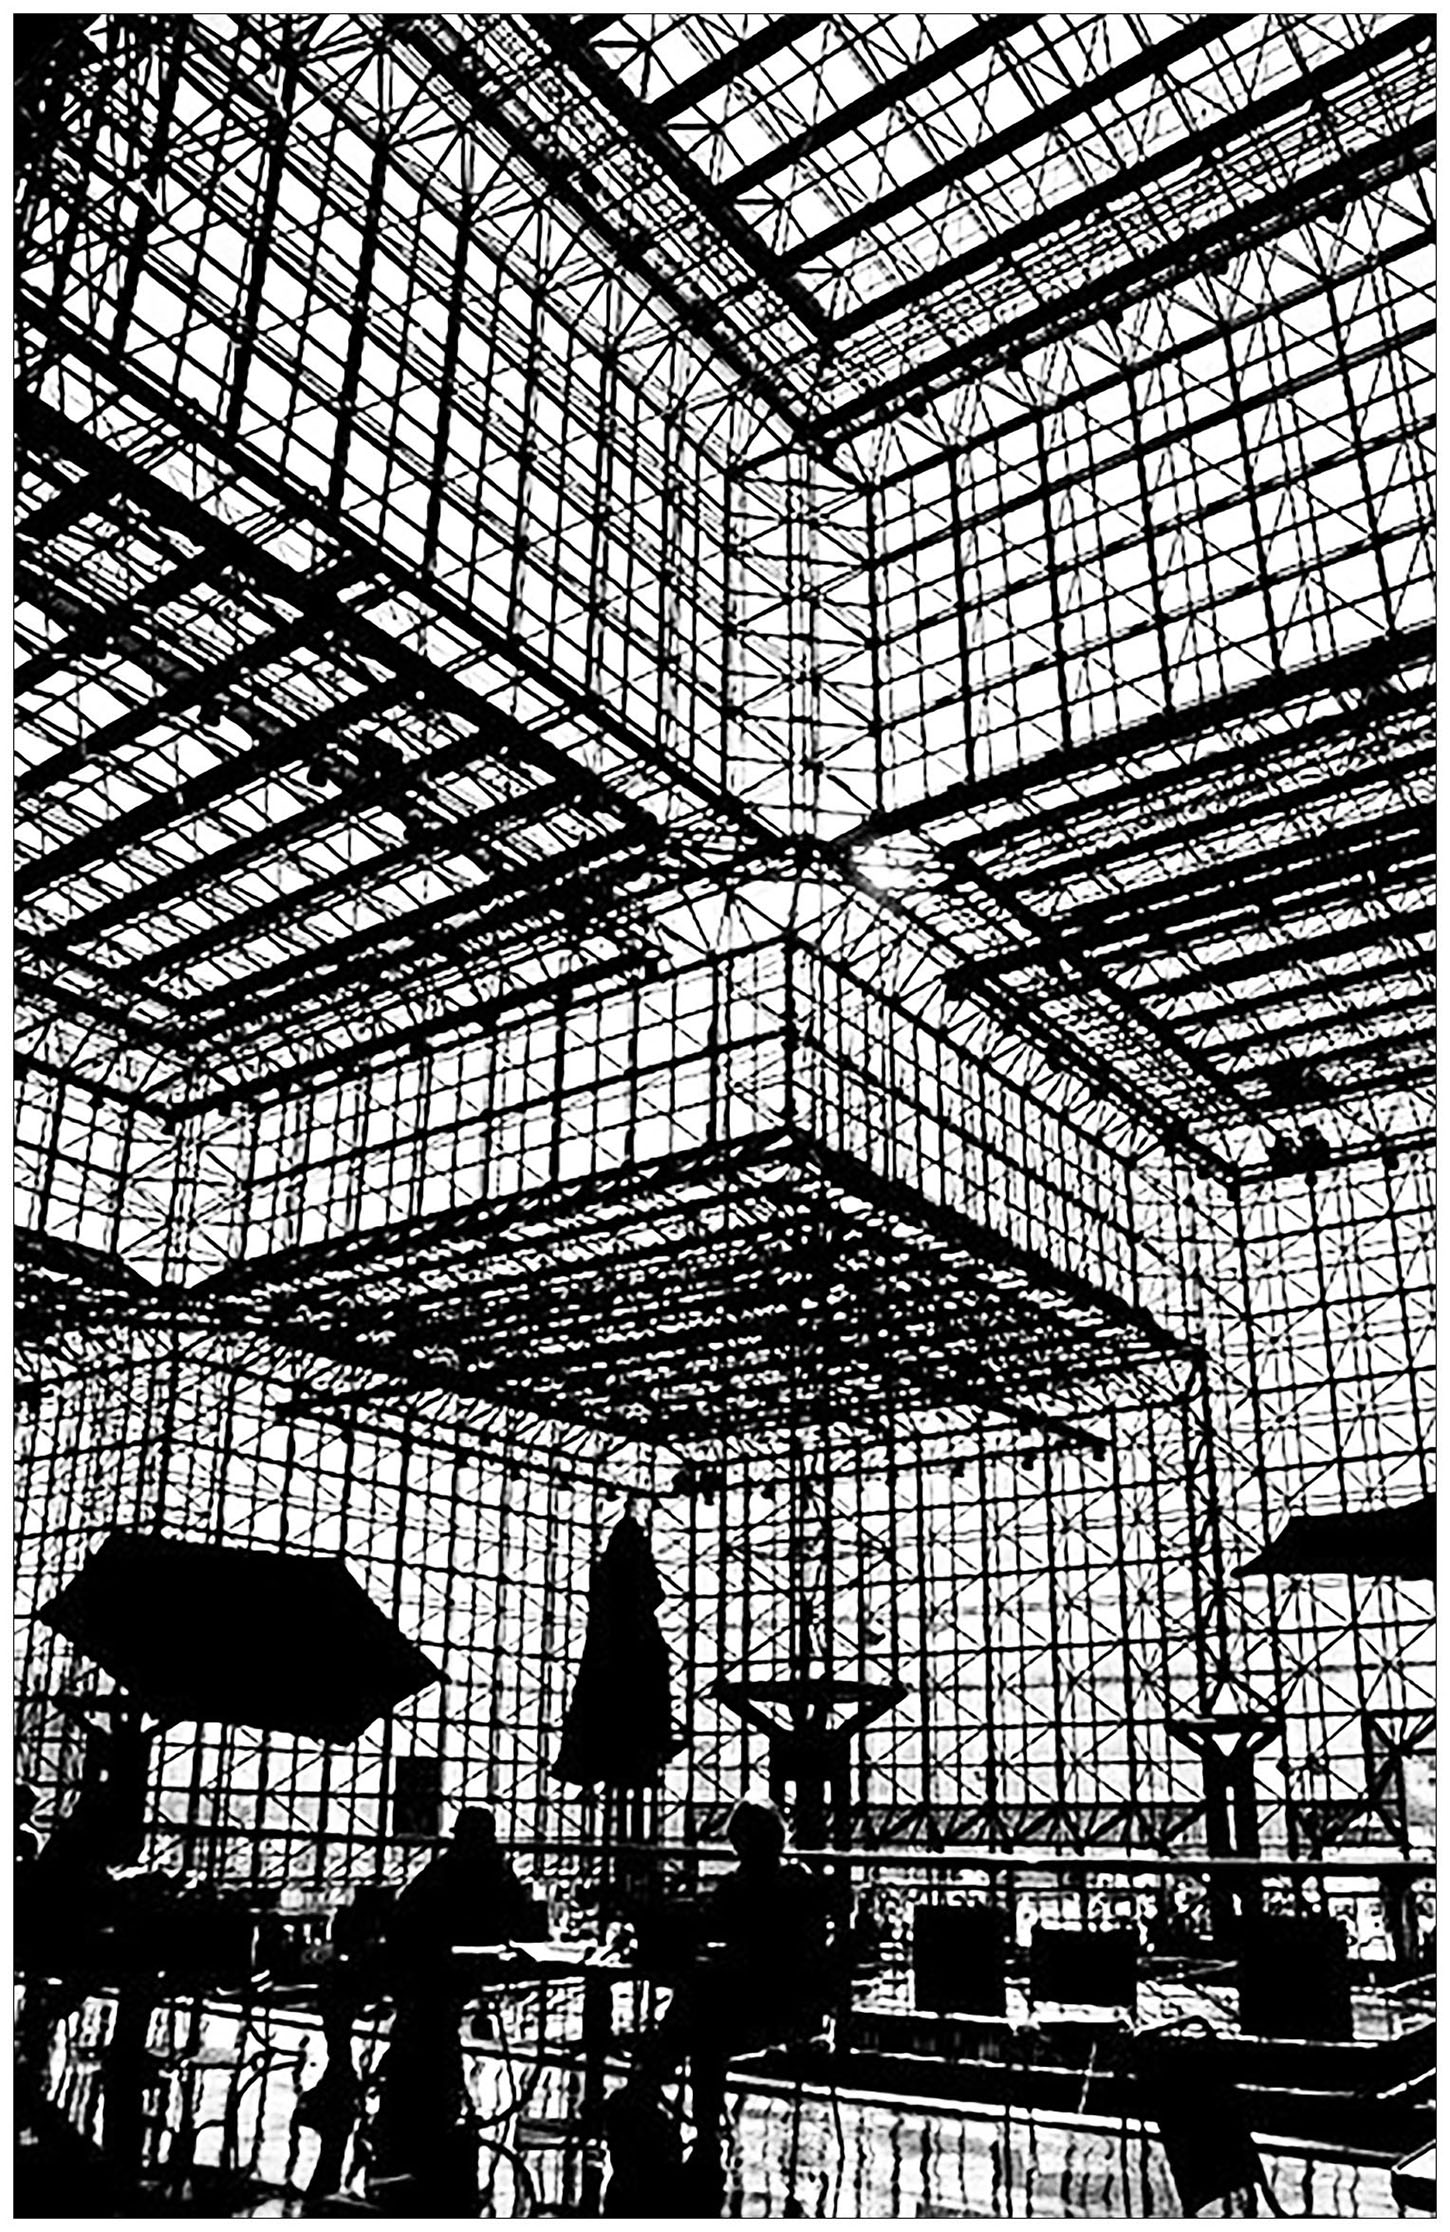 coloring-adult-shadows-in-pei-jacob-javits-center-new-york